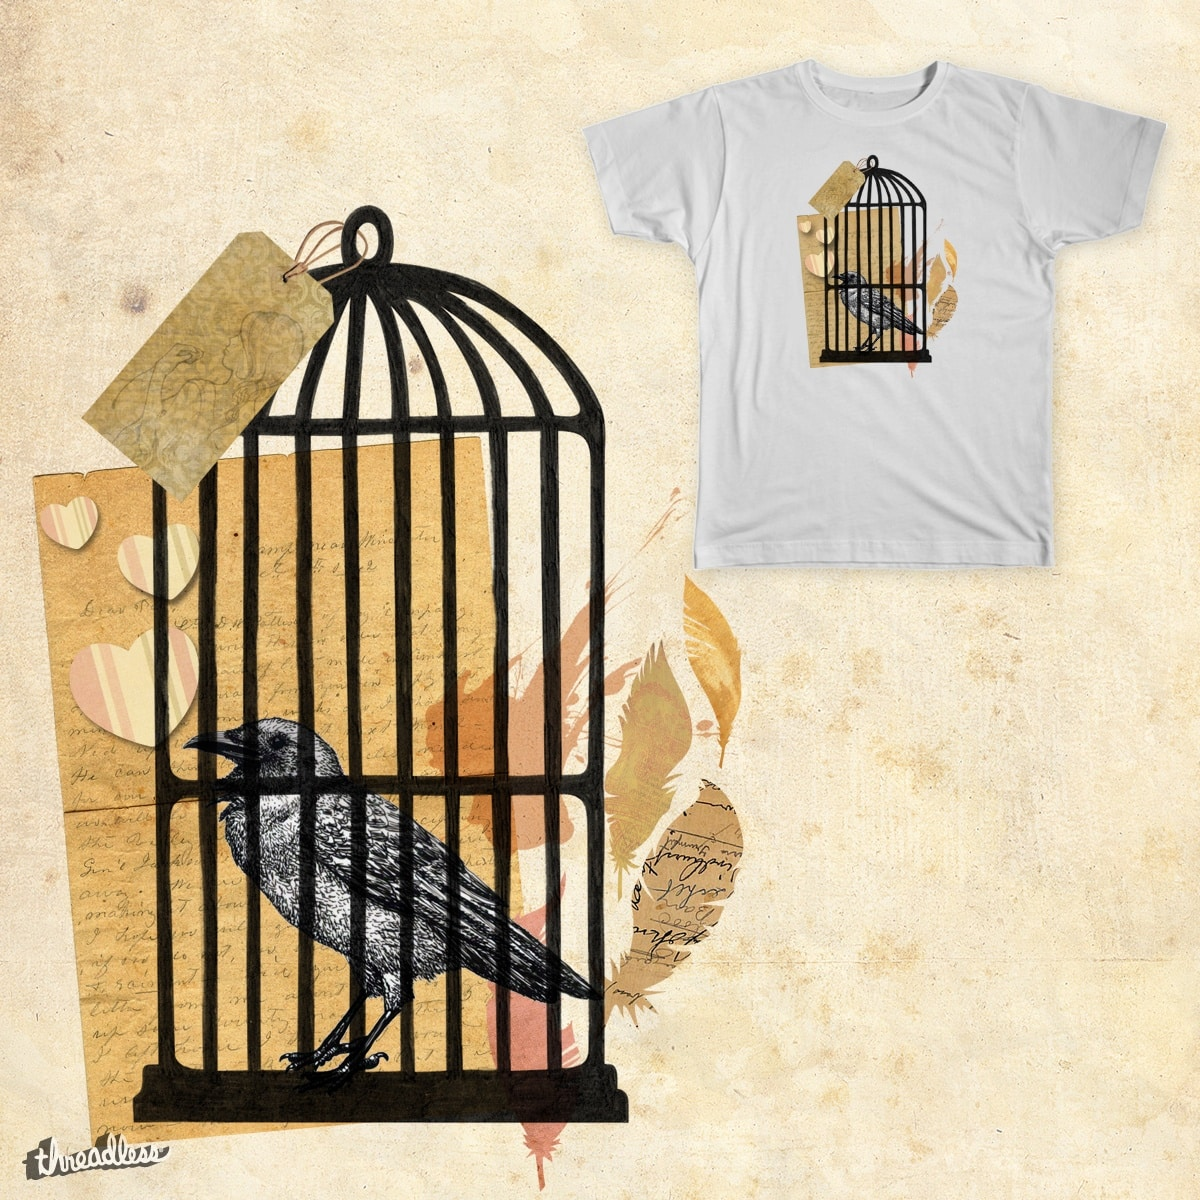 Cage by Half_Pint on Threadless